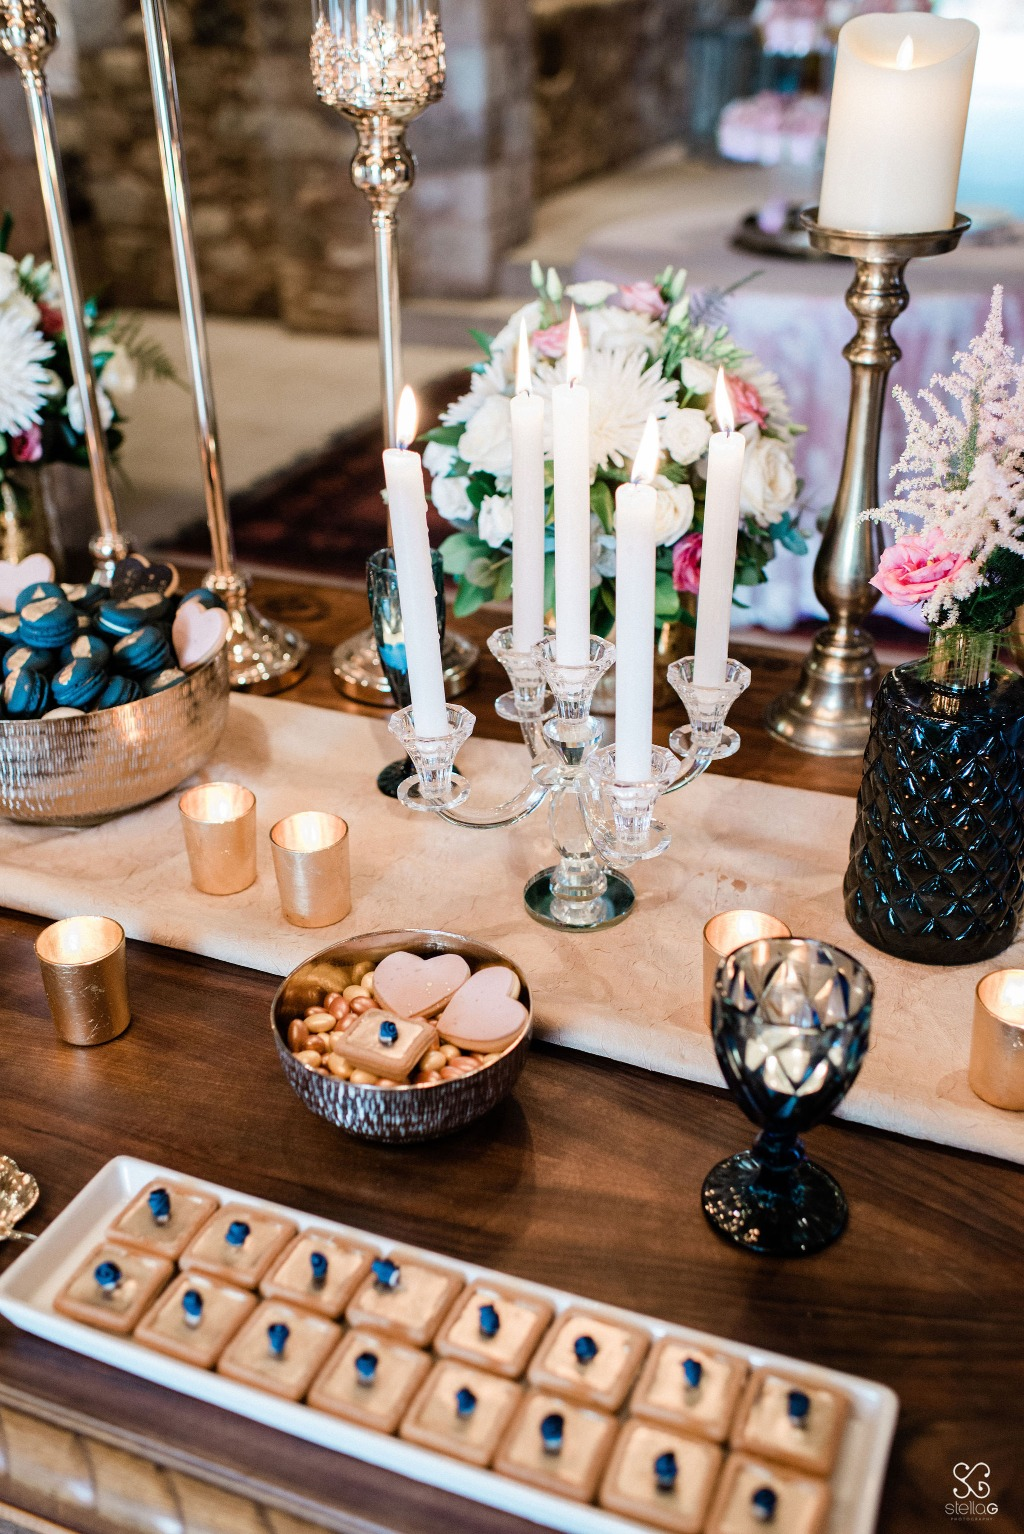 Isn't that just a beautiful beginning to a sweet life together? Details from a wedding candy table in gold, blue and pink.